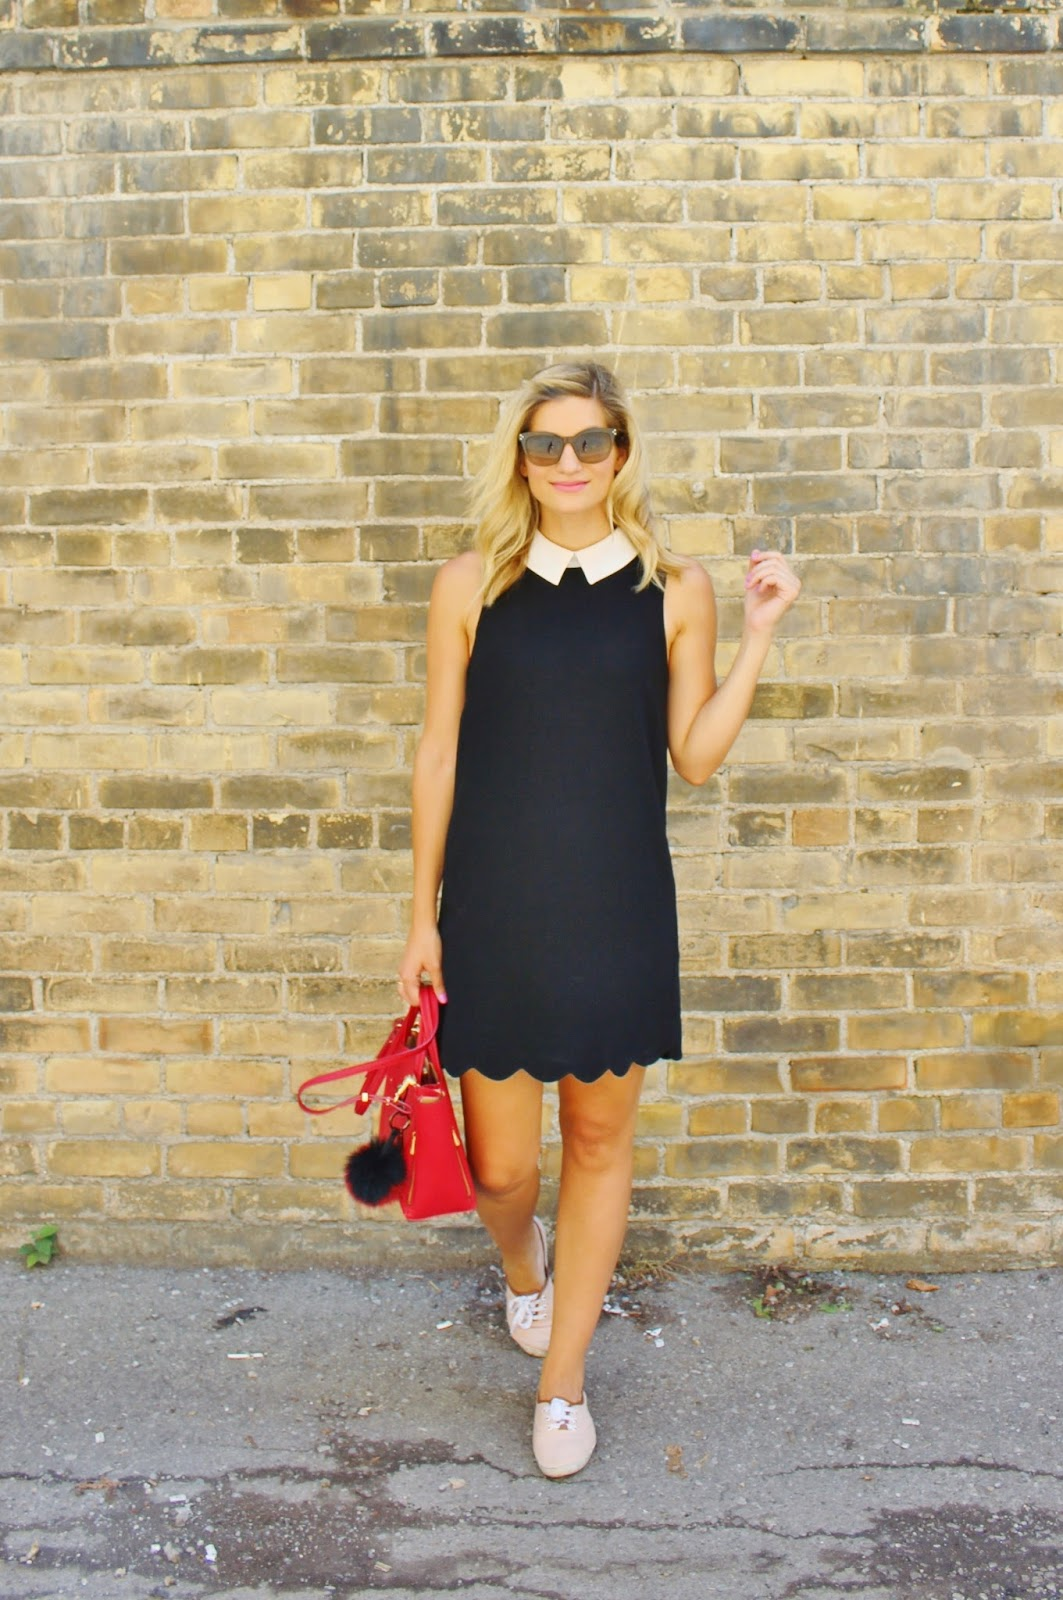 Bijuleni- Preppy peter pan collar black dress, red Ann Taylor tote and beige sneakers